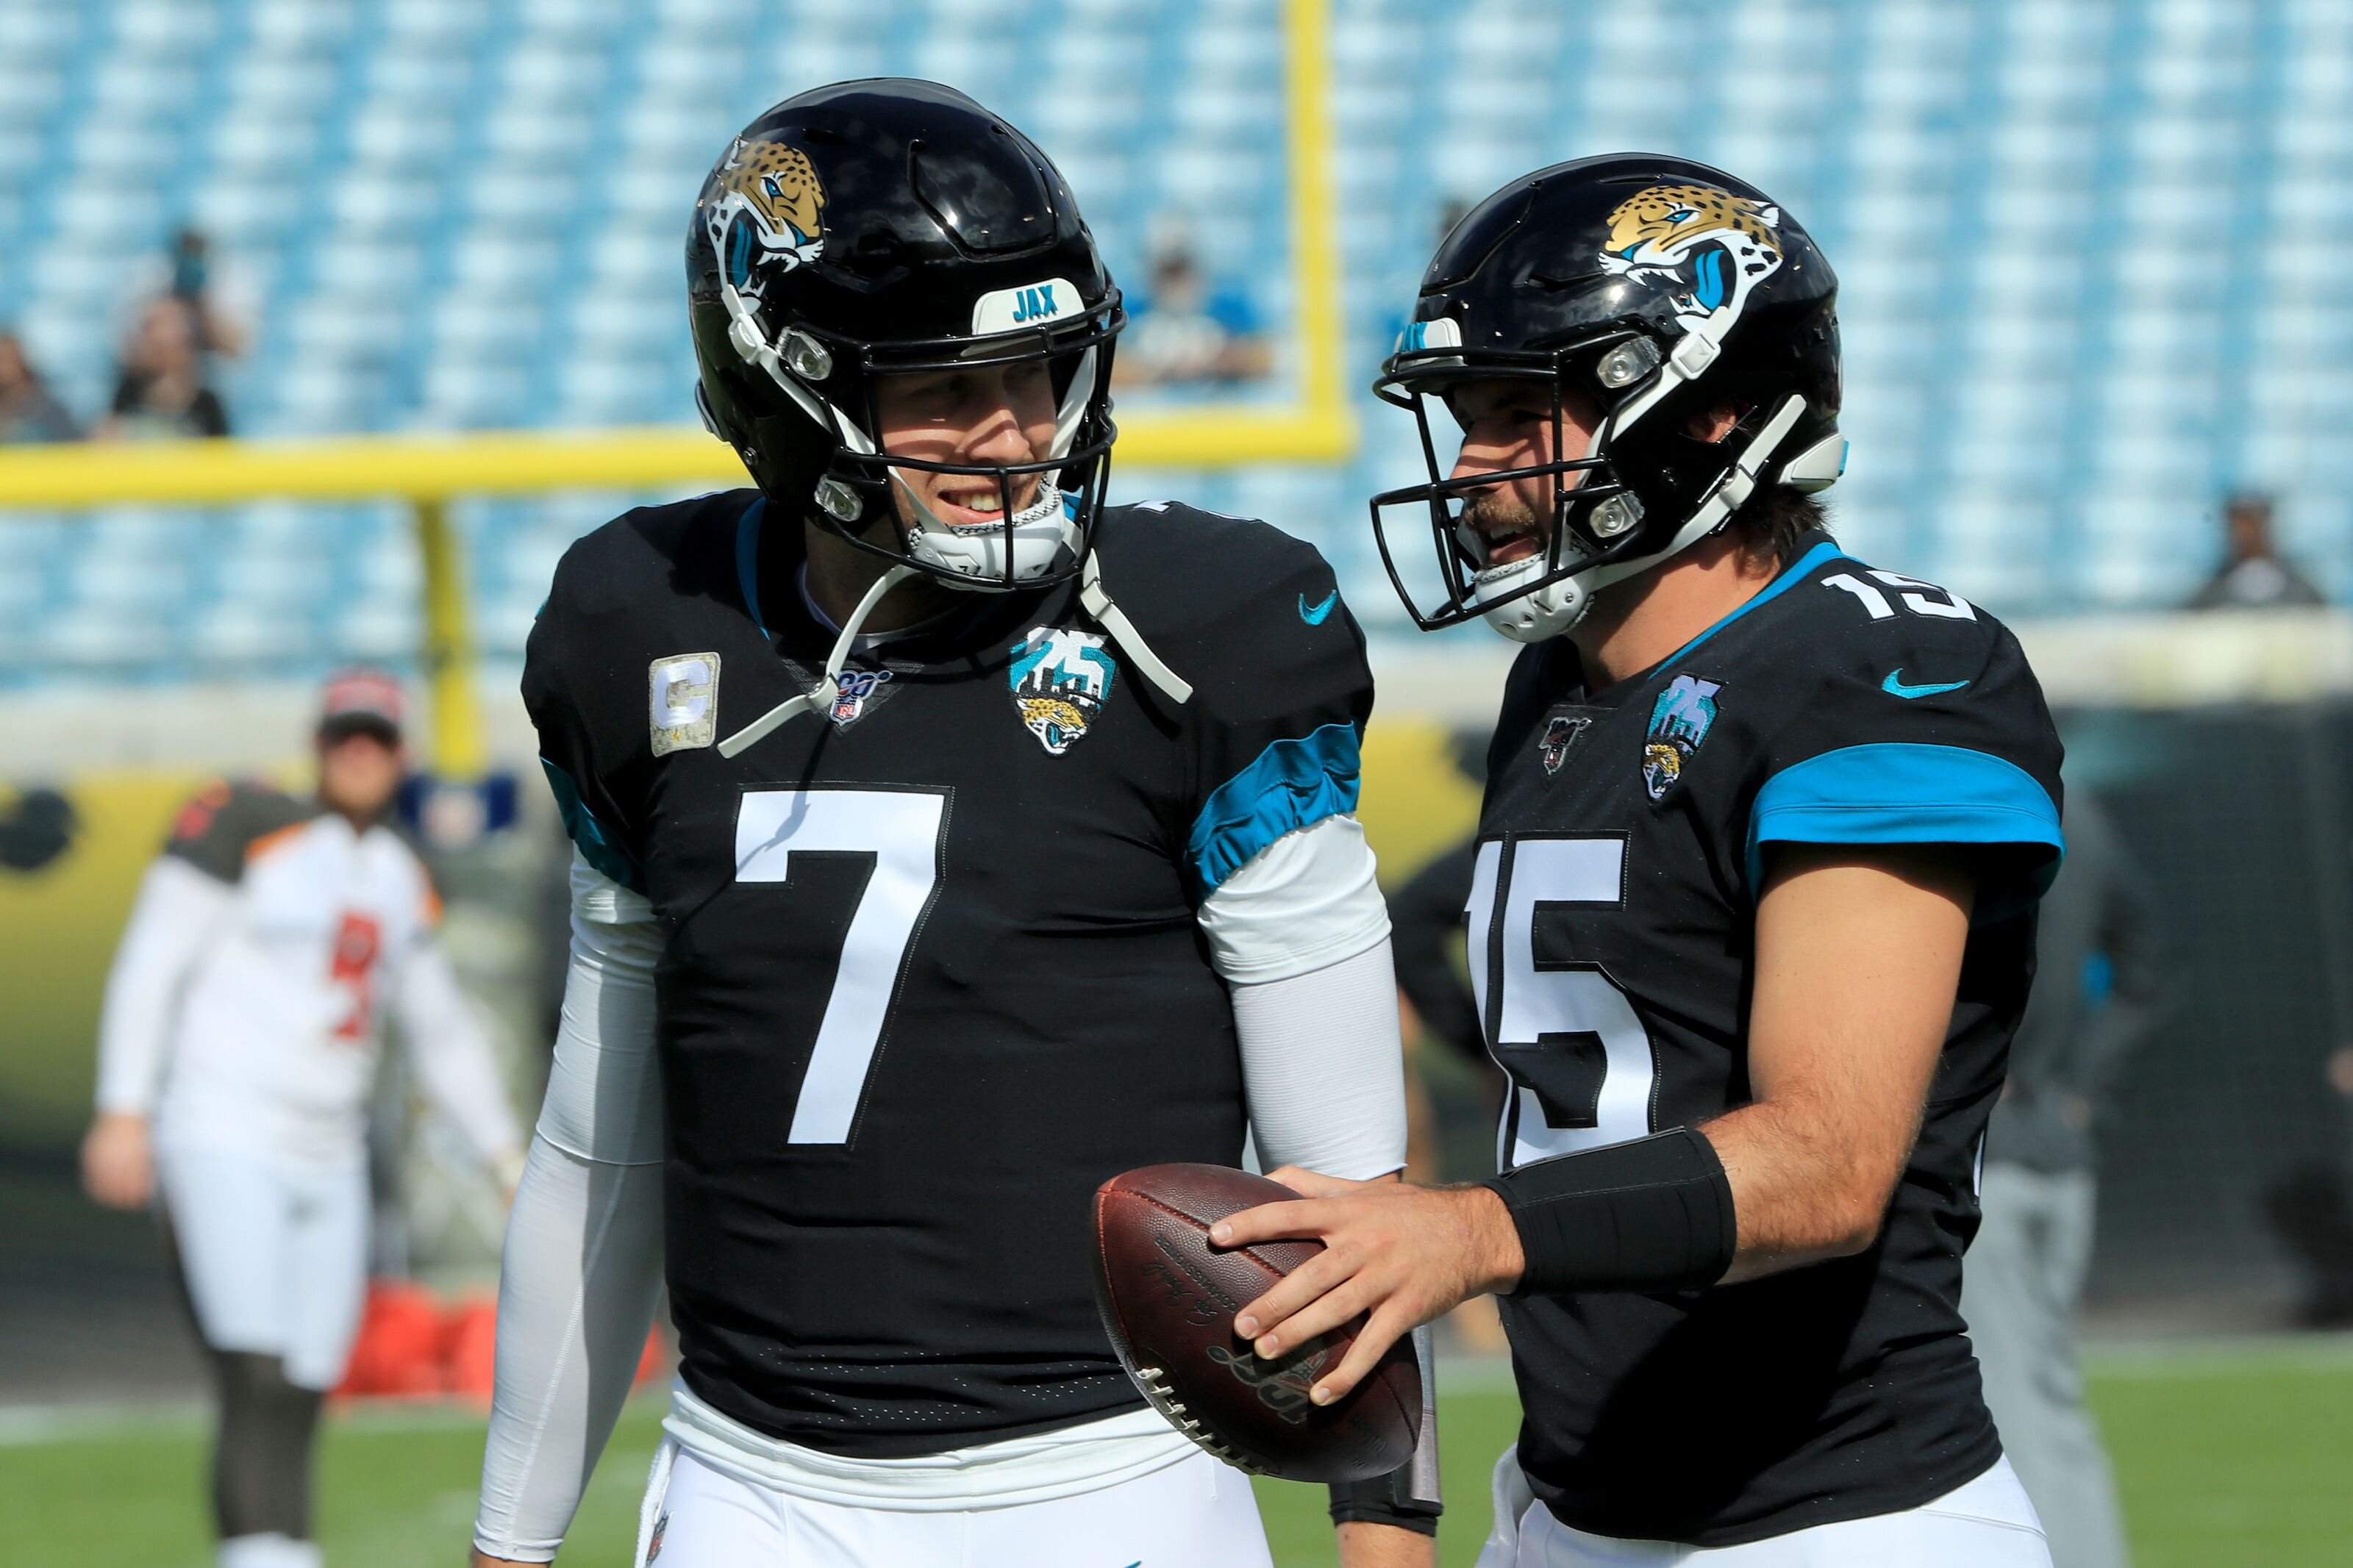 The Jaguars must evaluate their quarterbacks for the 2020 season